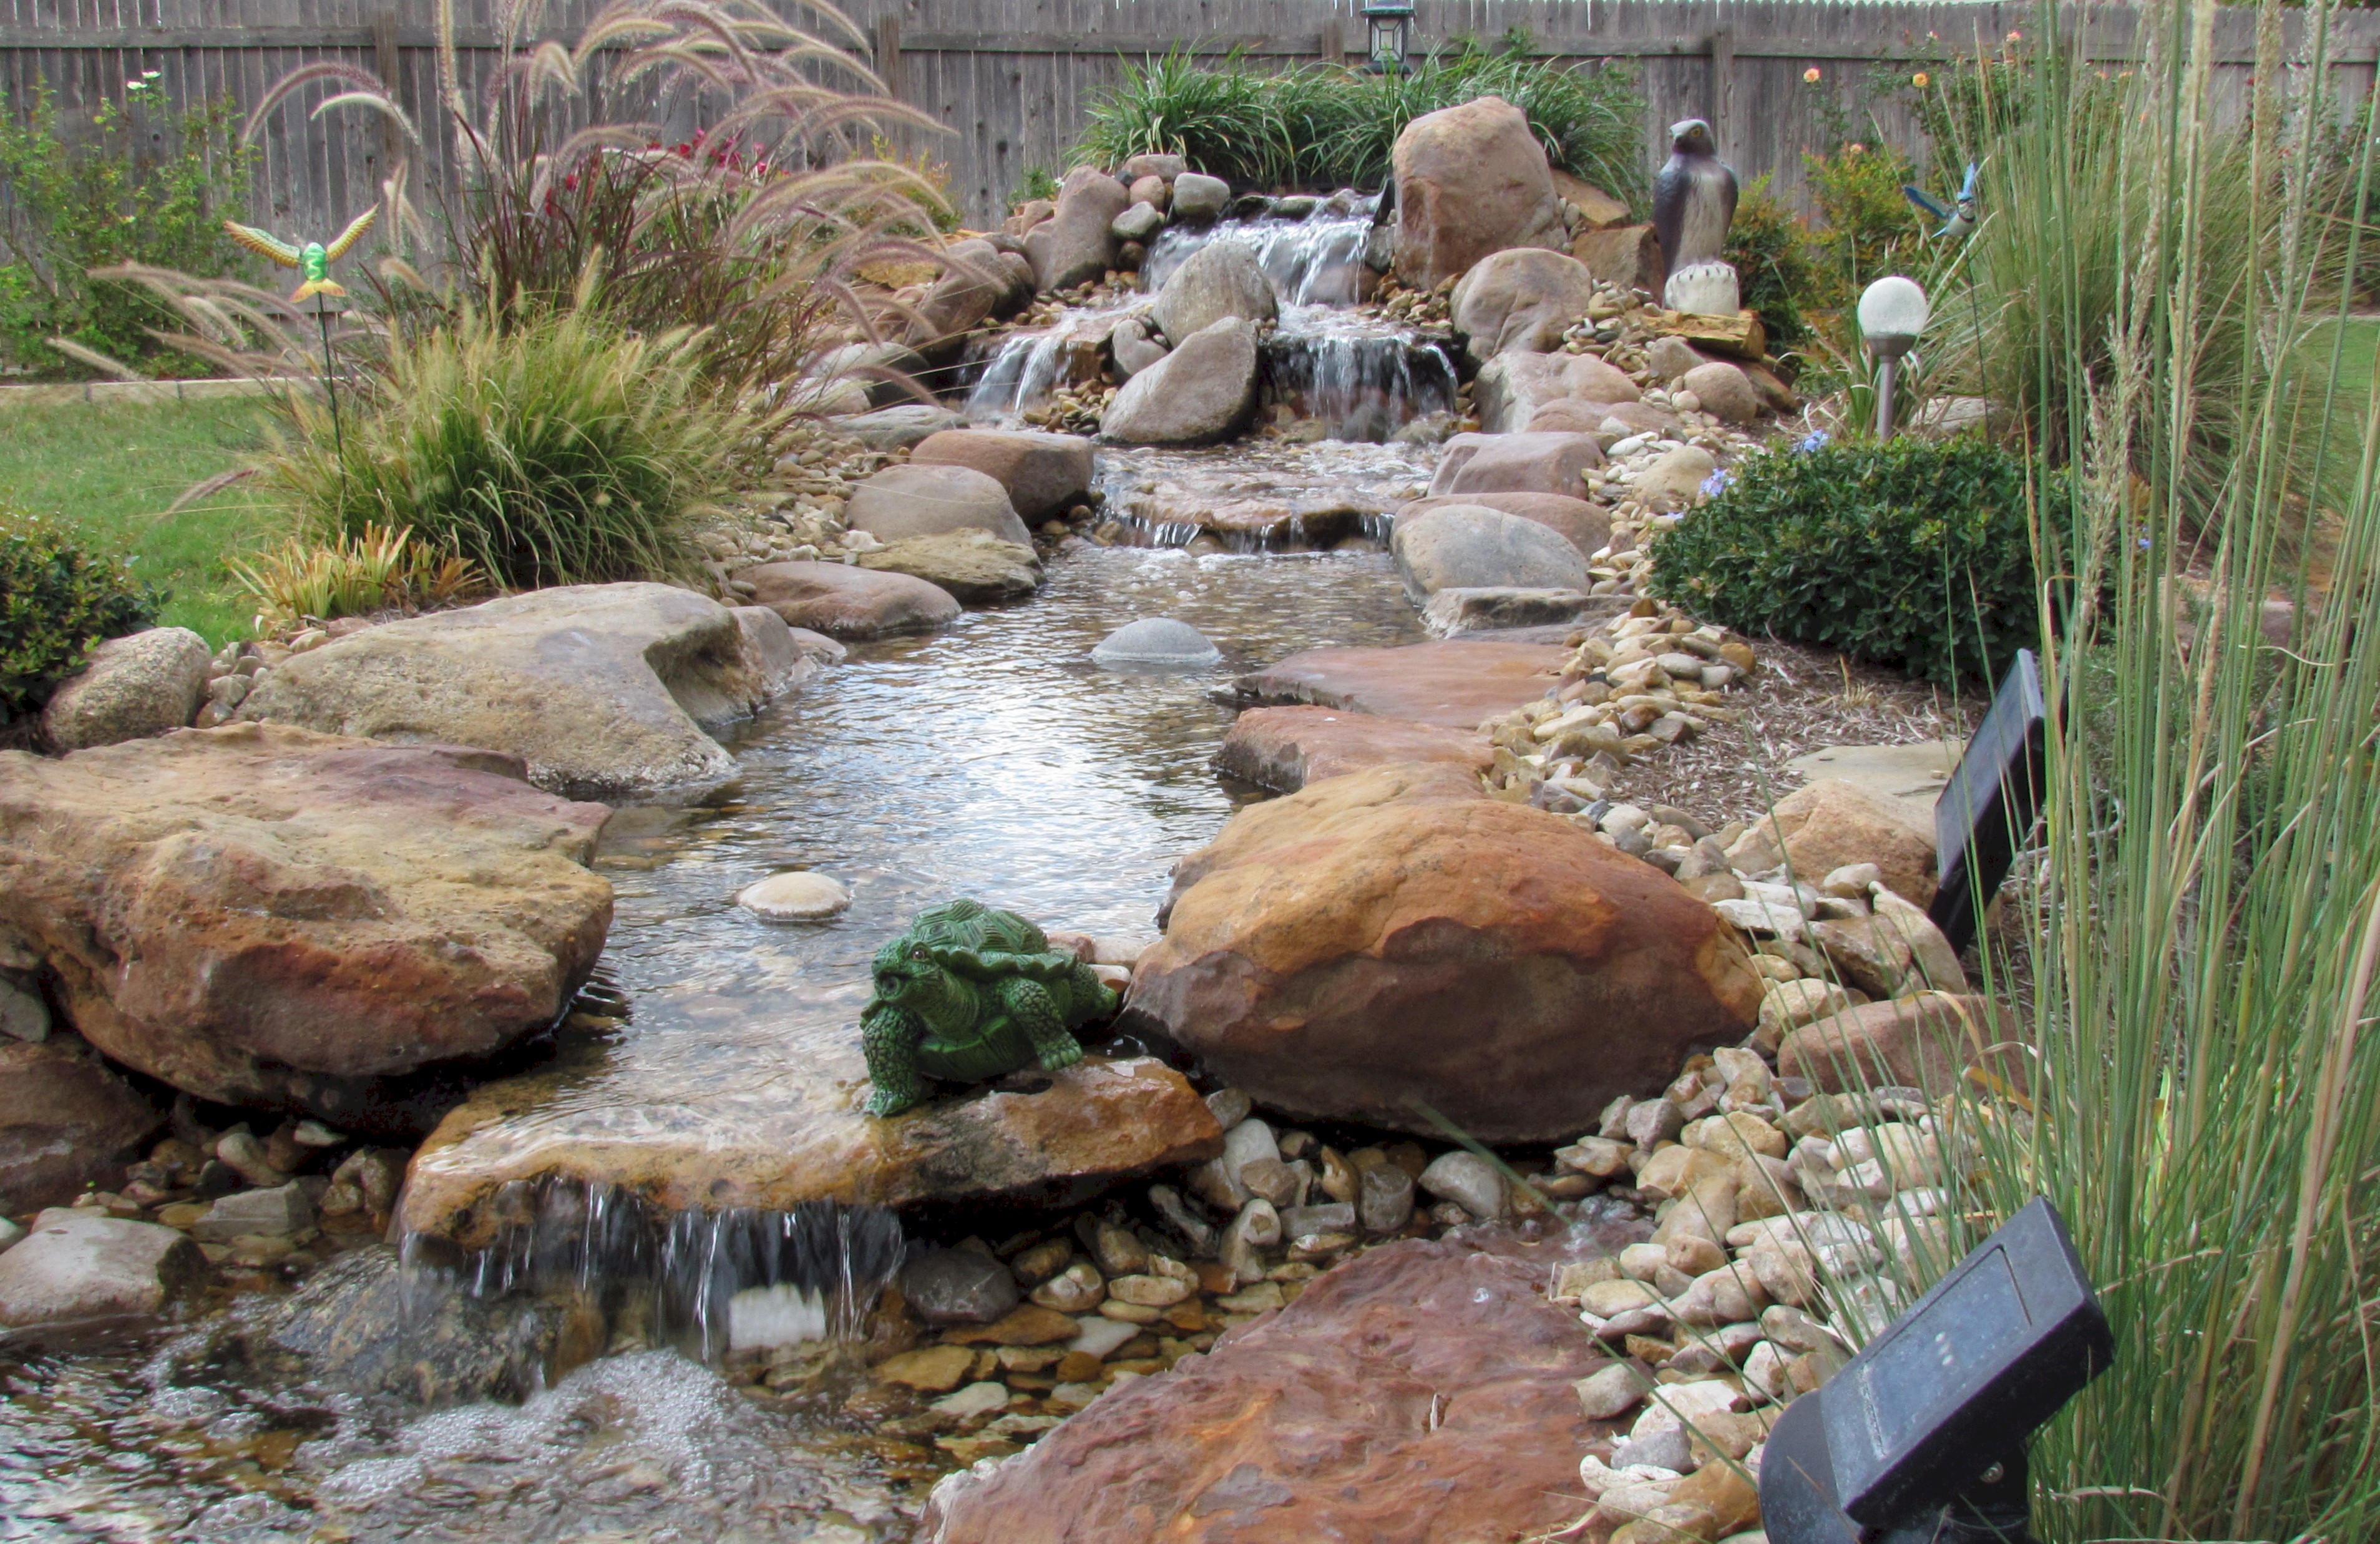 Ponds And Pondless Water Features For Sale - The Pond ... on Small Backyard Pond With Waterfall  id=69007